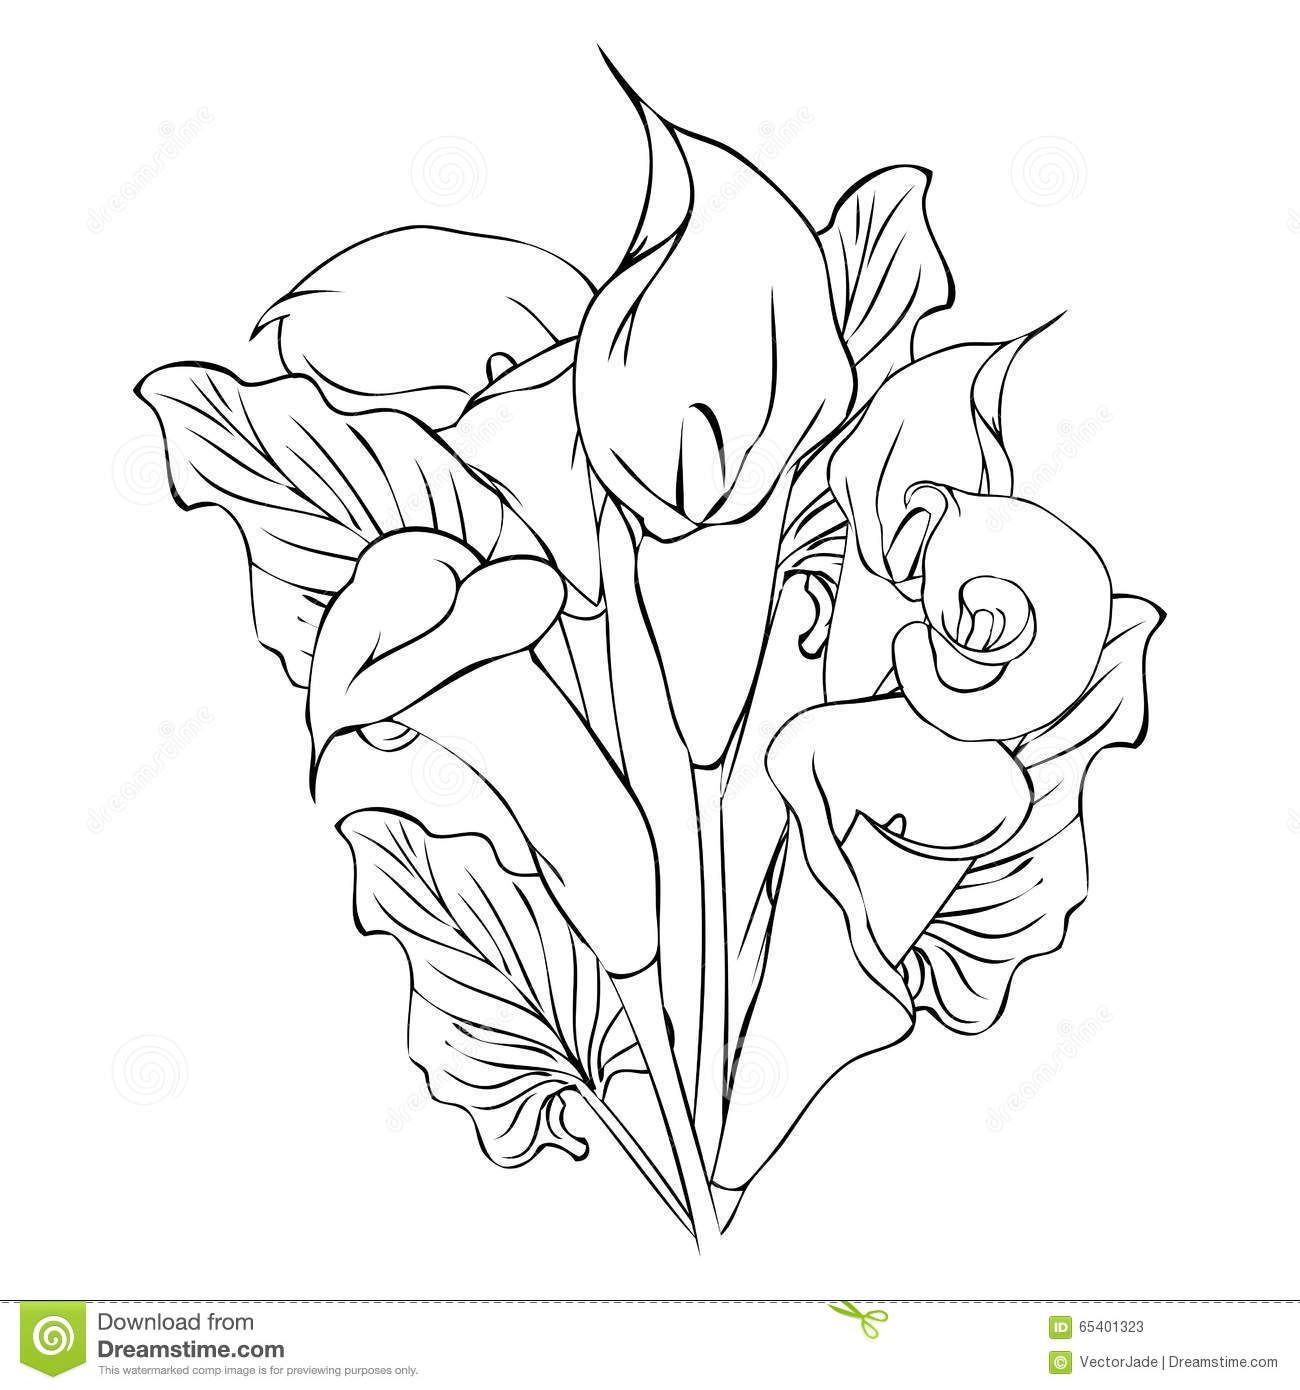 Calla Lily Flower Line Drawing Novocom Top In 2021 Calla Lily Tattoos Flower Line Drawings Lily Tattoo